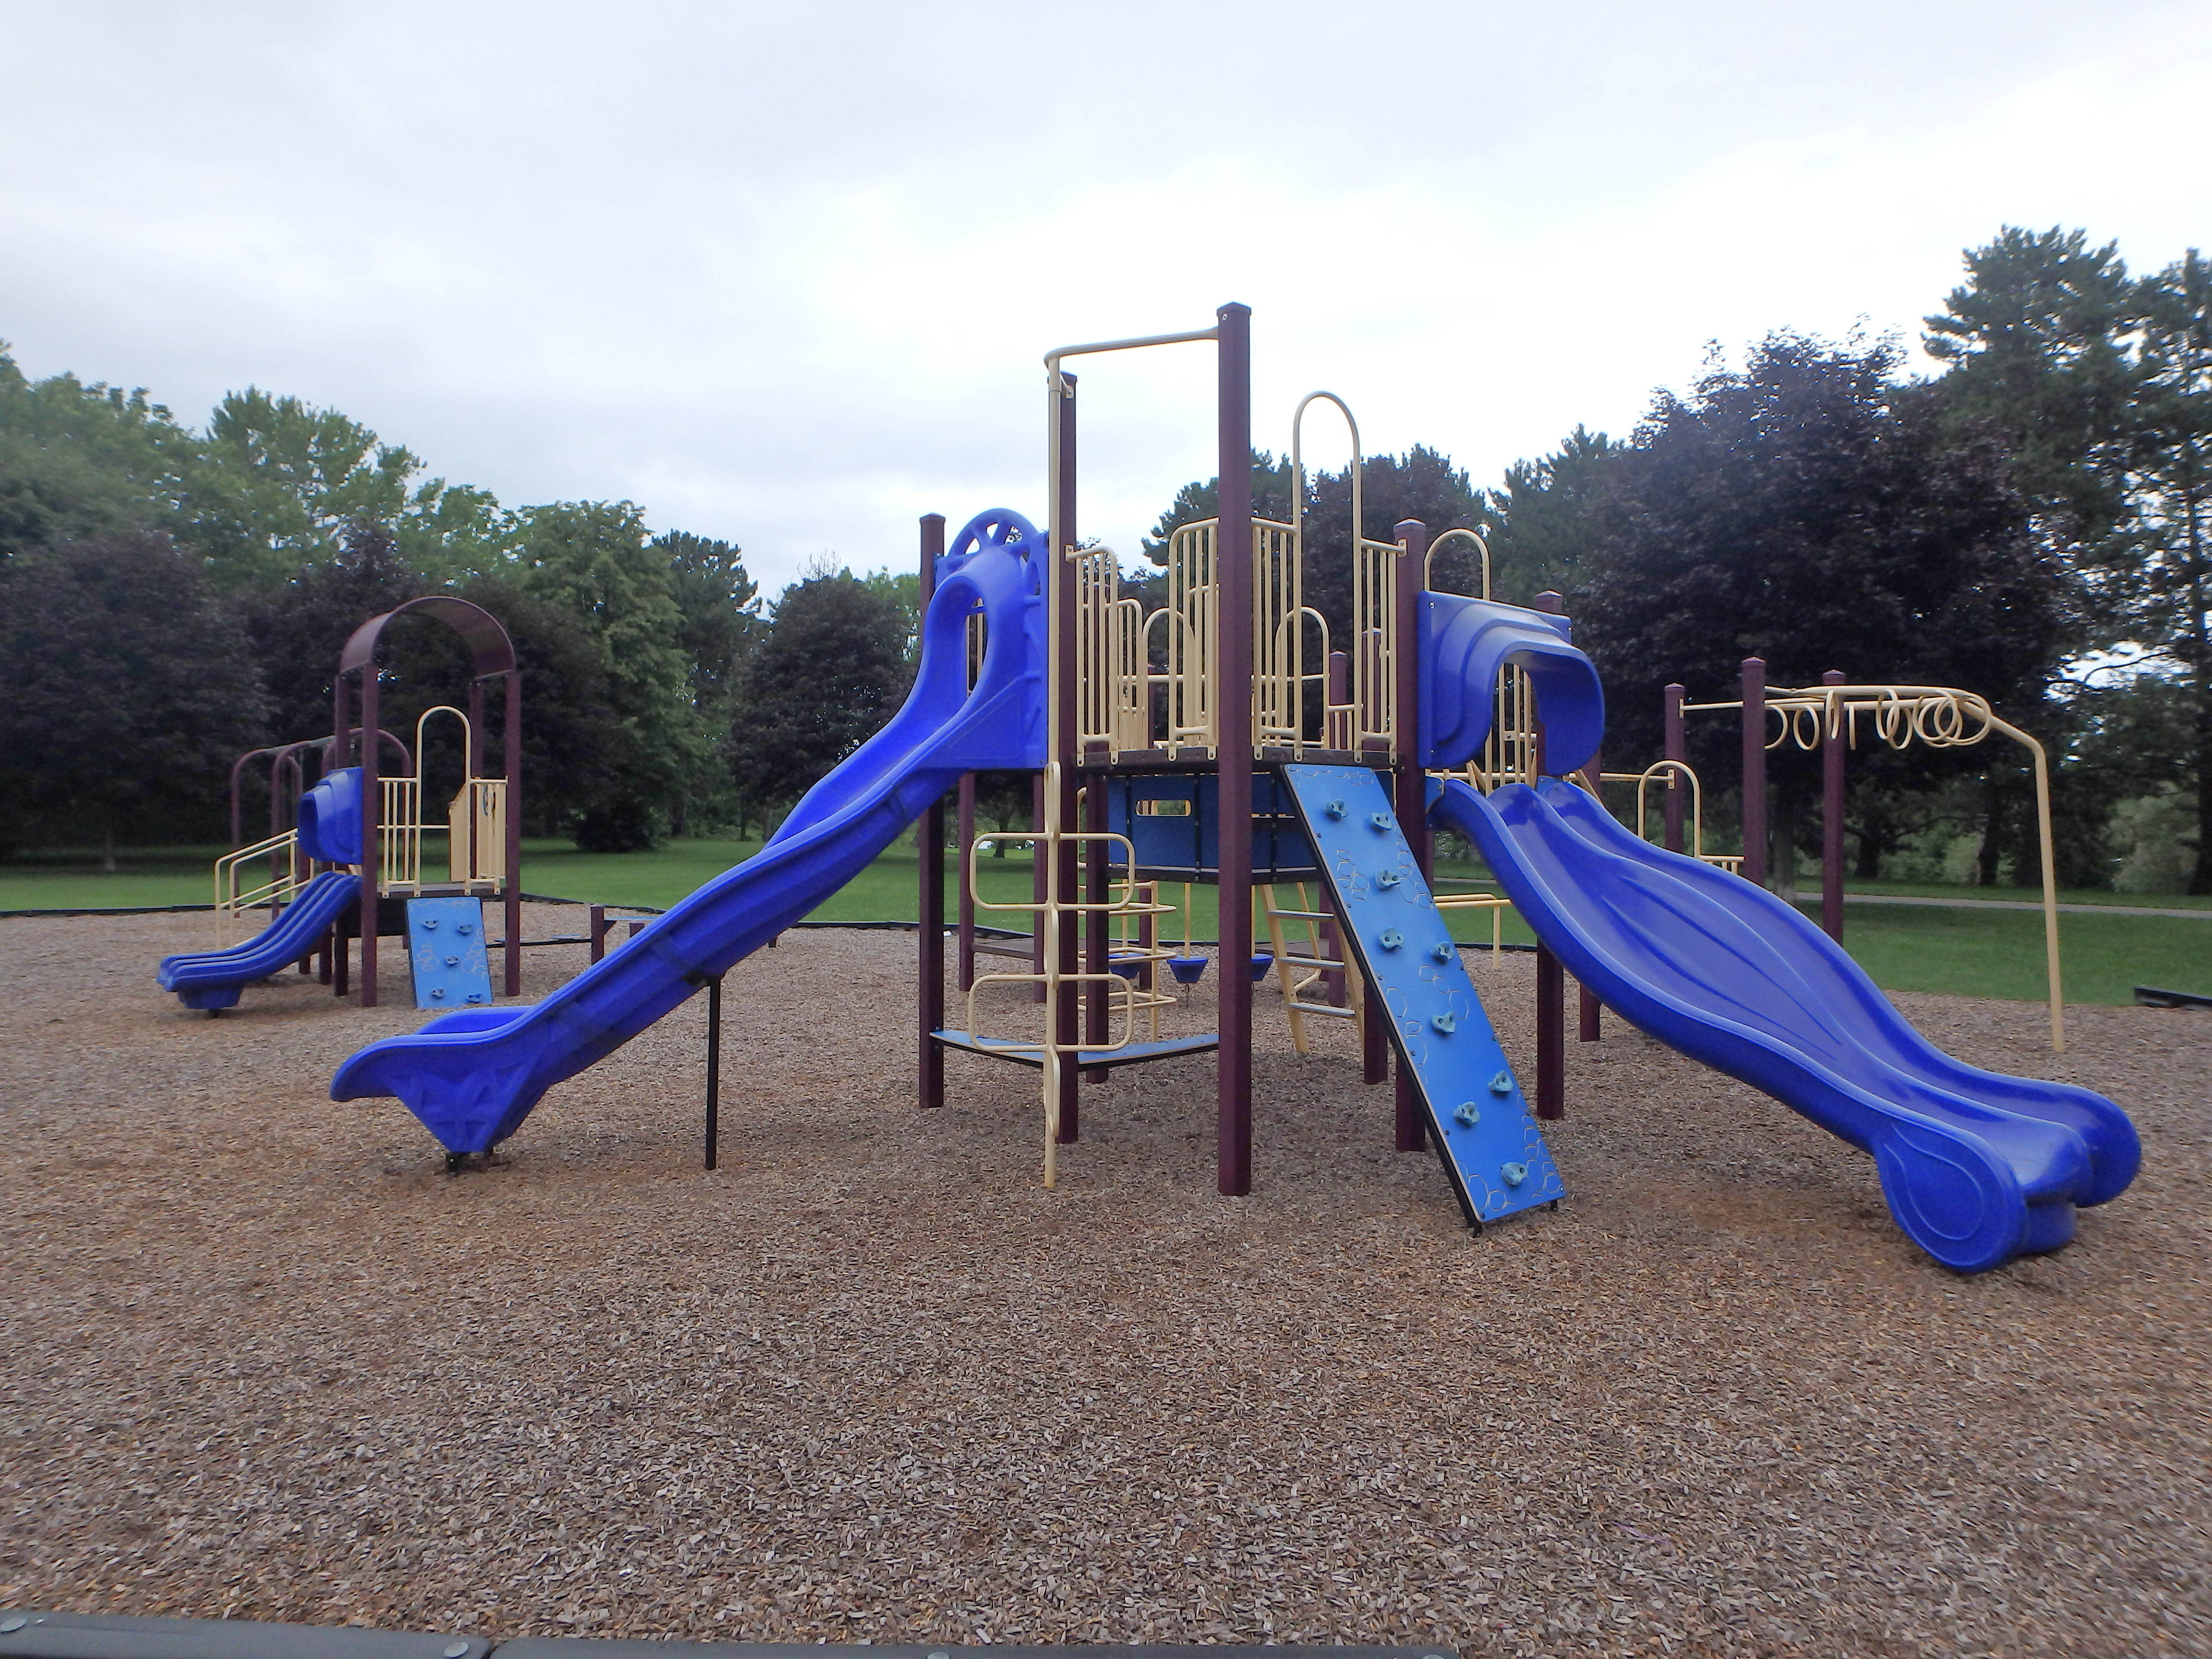 G:\!PARKS CEMETERIES FORESTRY AND HORTICULTURE\Parks-Inventory\Play-Equipment\Royal Henley Park\Royal Henley 2.JPG